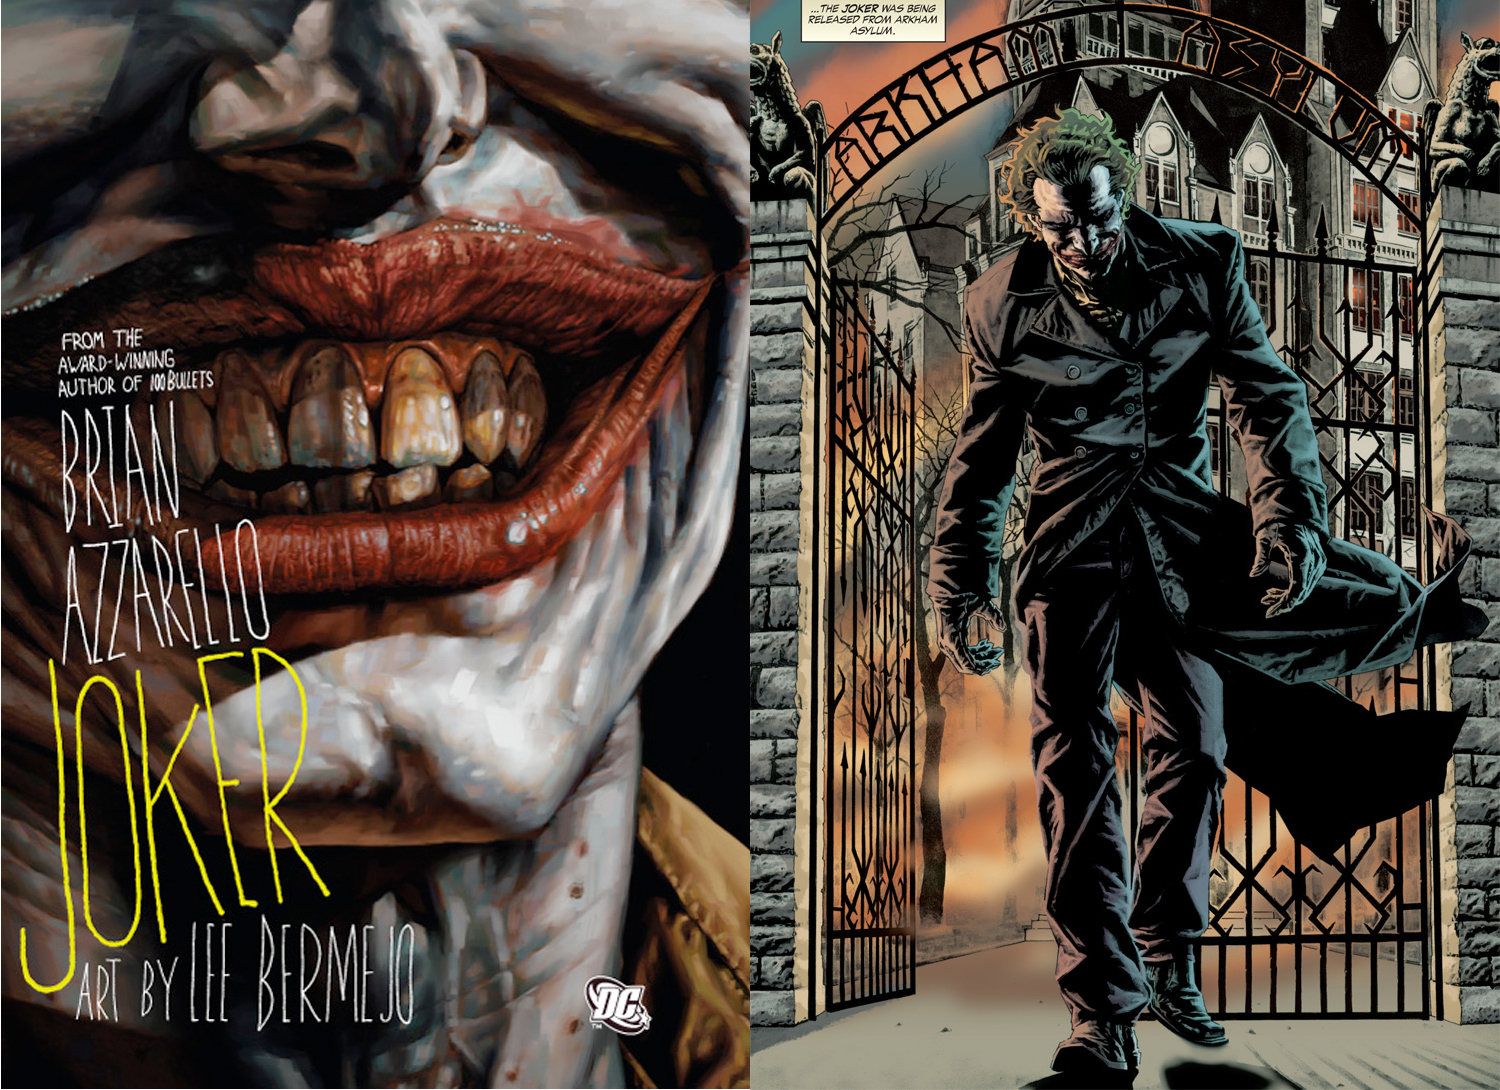 The Joker Brian Azzarello and Lee Bermejo